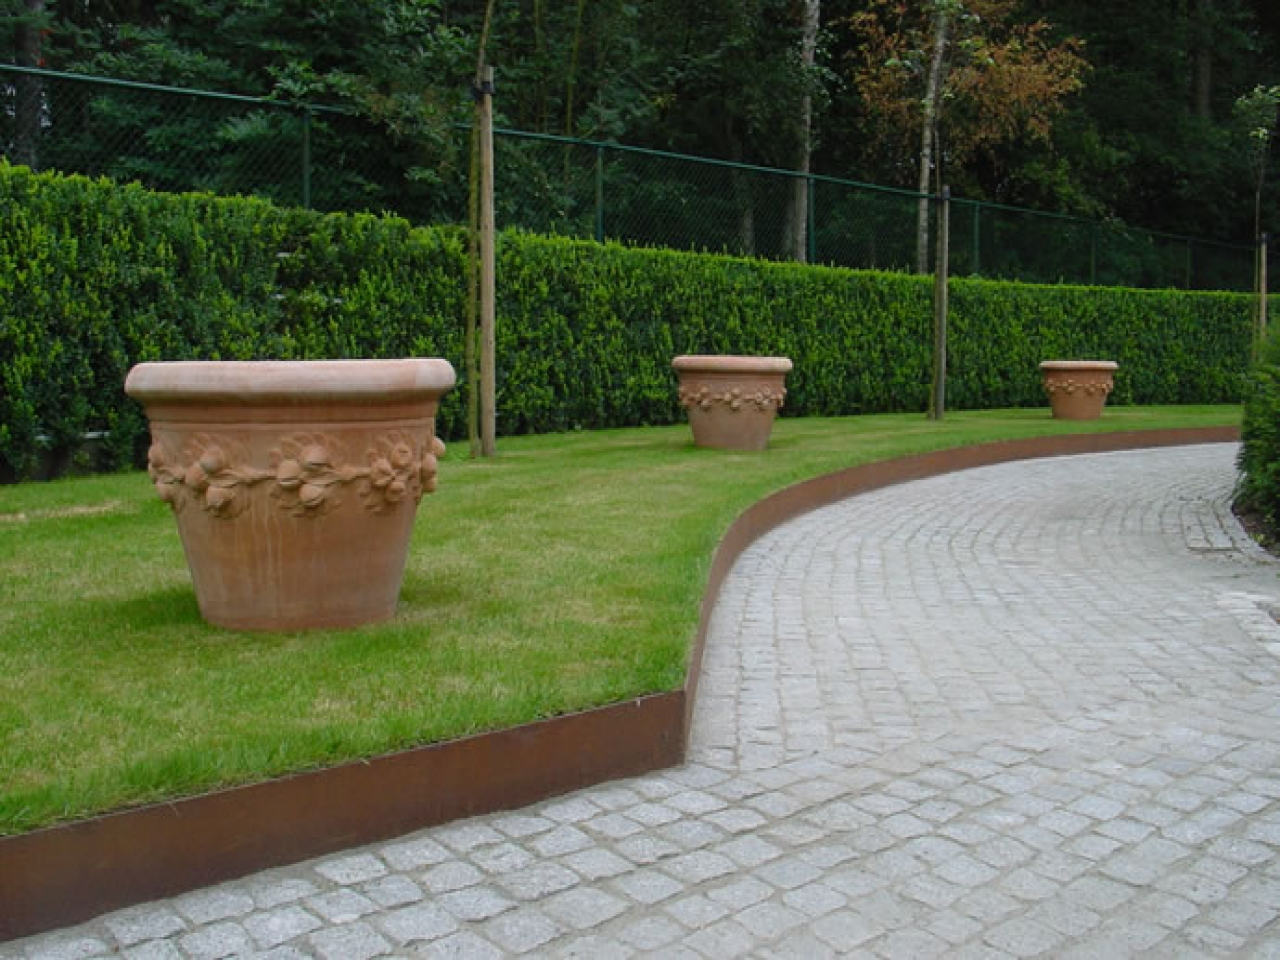 Lowes Landscaping Timbers | Landscaping Bricks at Lowes | Metal Landscape Edging